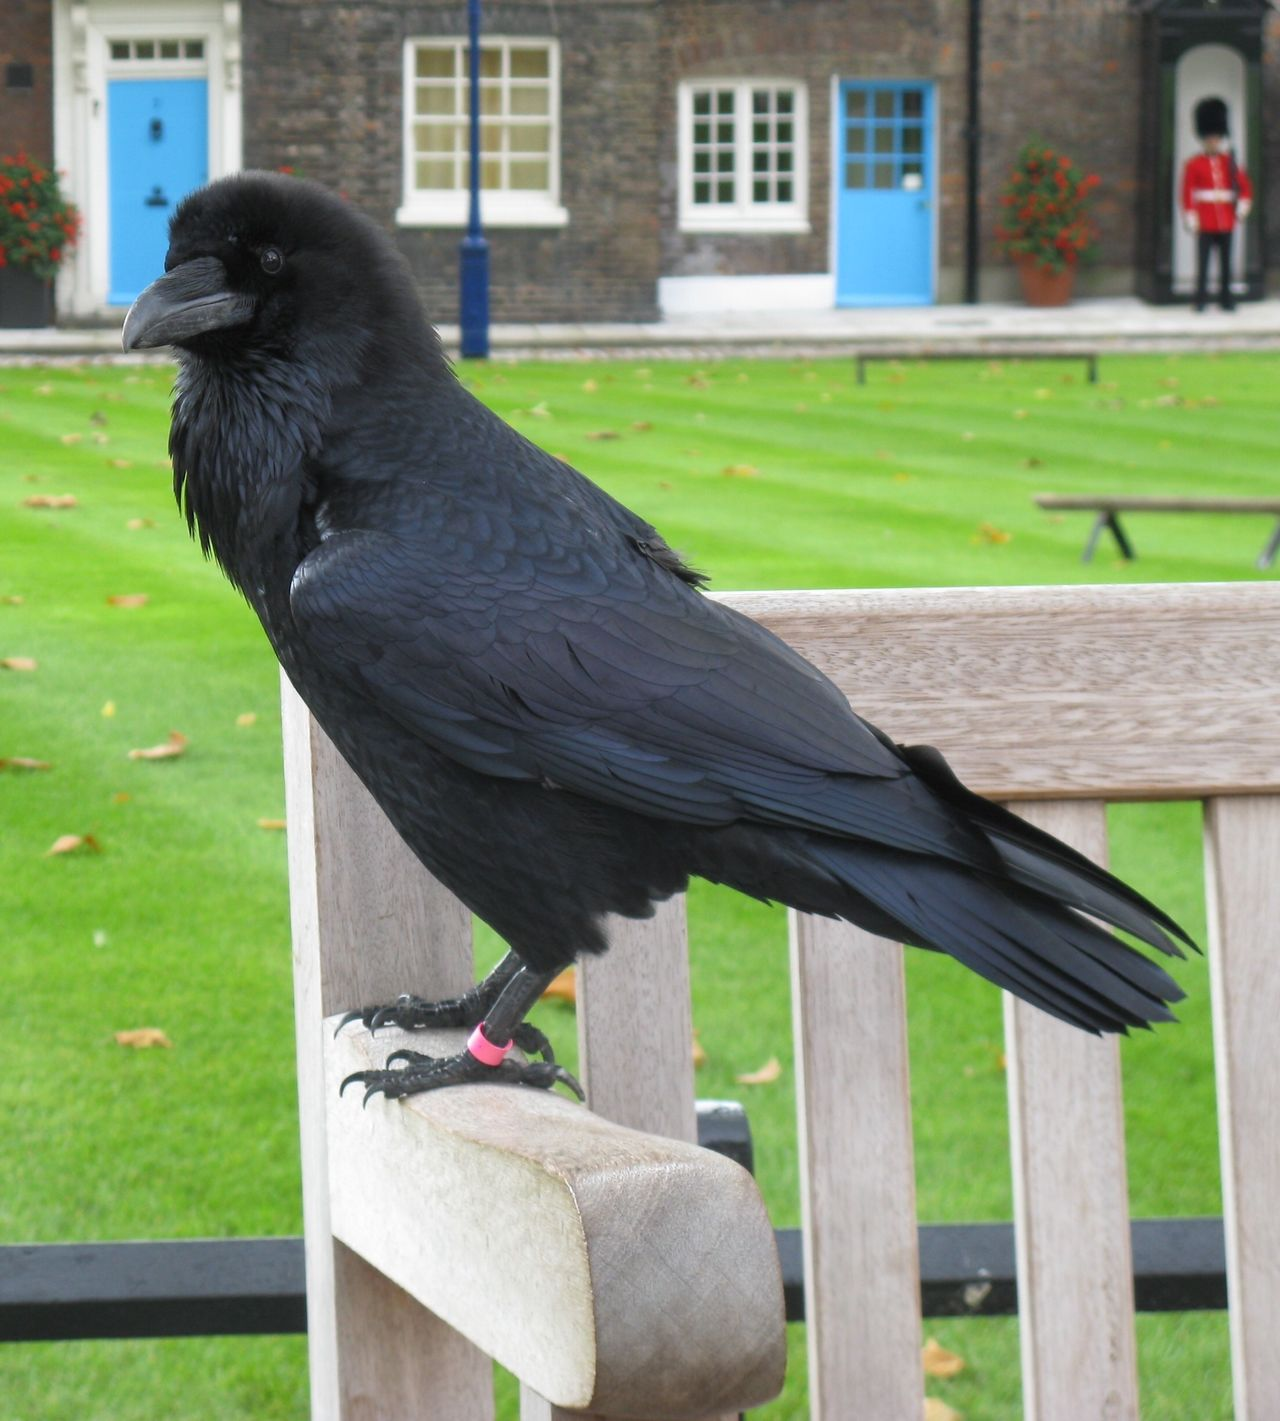 Guard Duty Guard Duty Raven Tower Of London Black Bird London